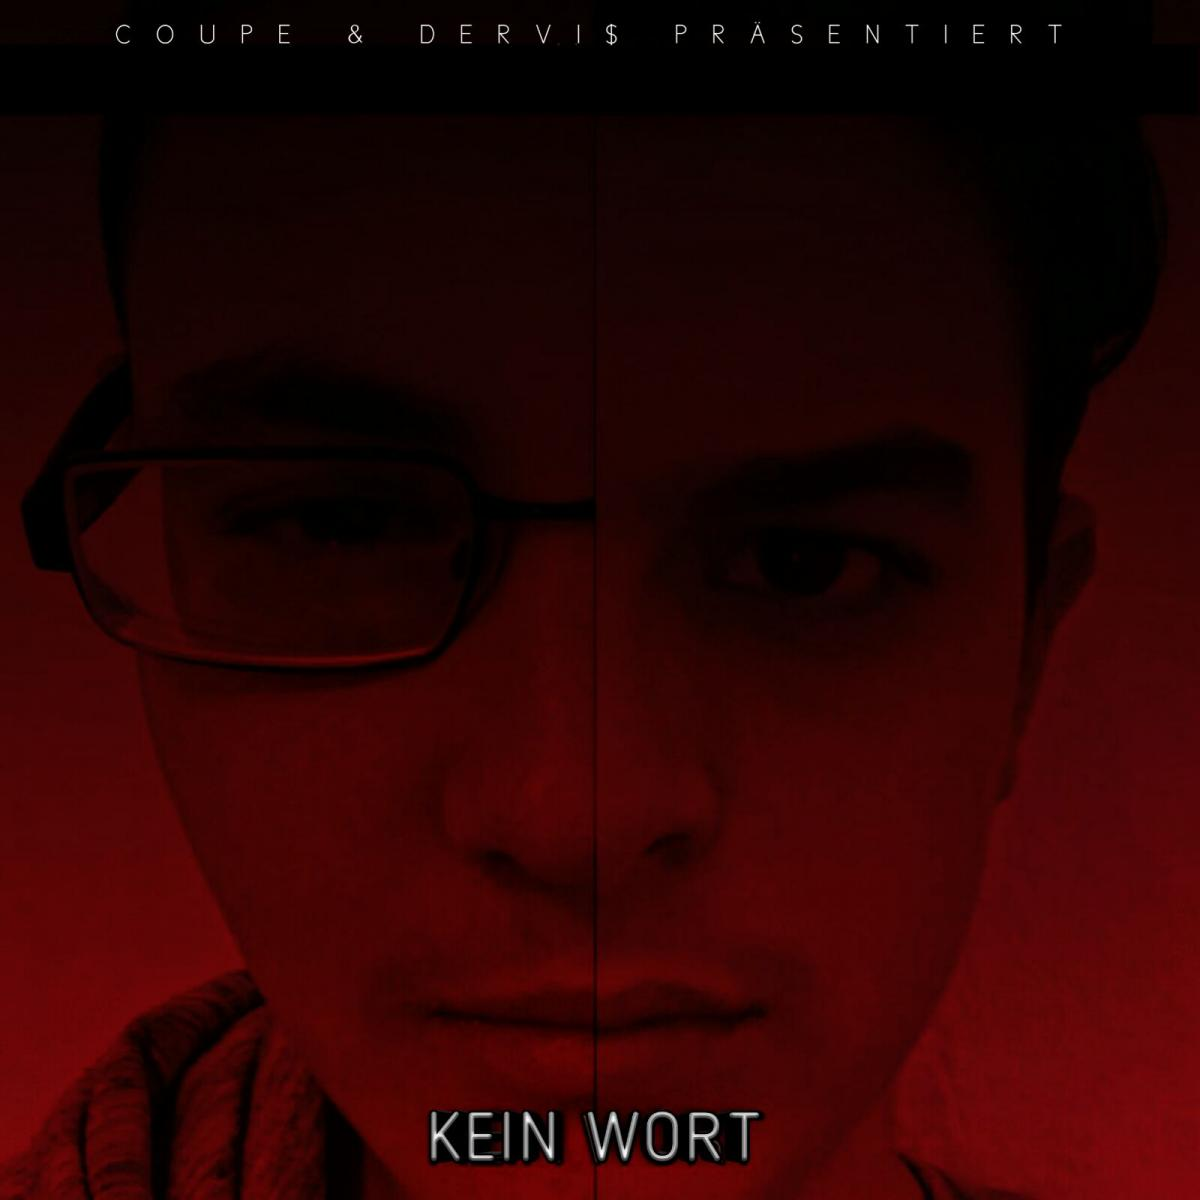 Upcoming: King Coupe & Dervi$ - Kein Wort